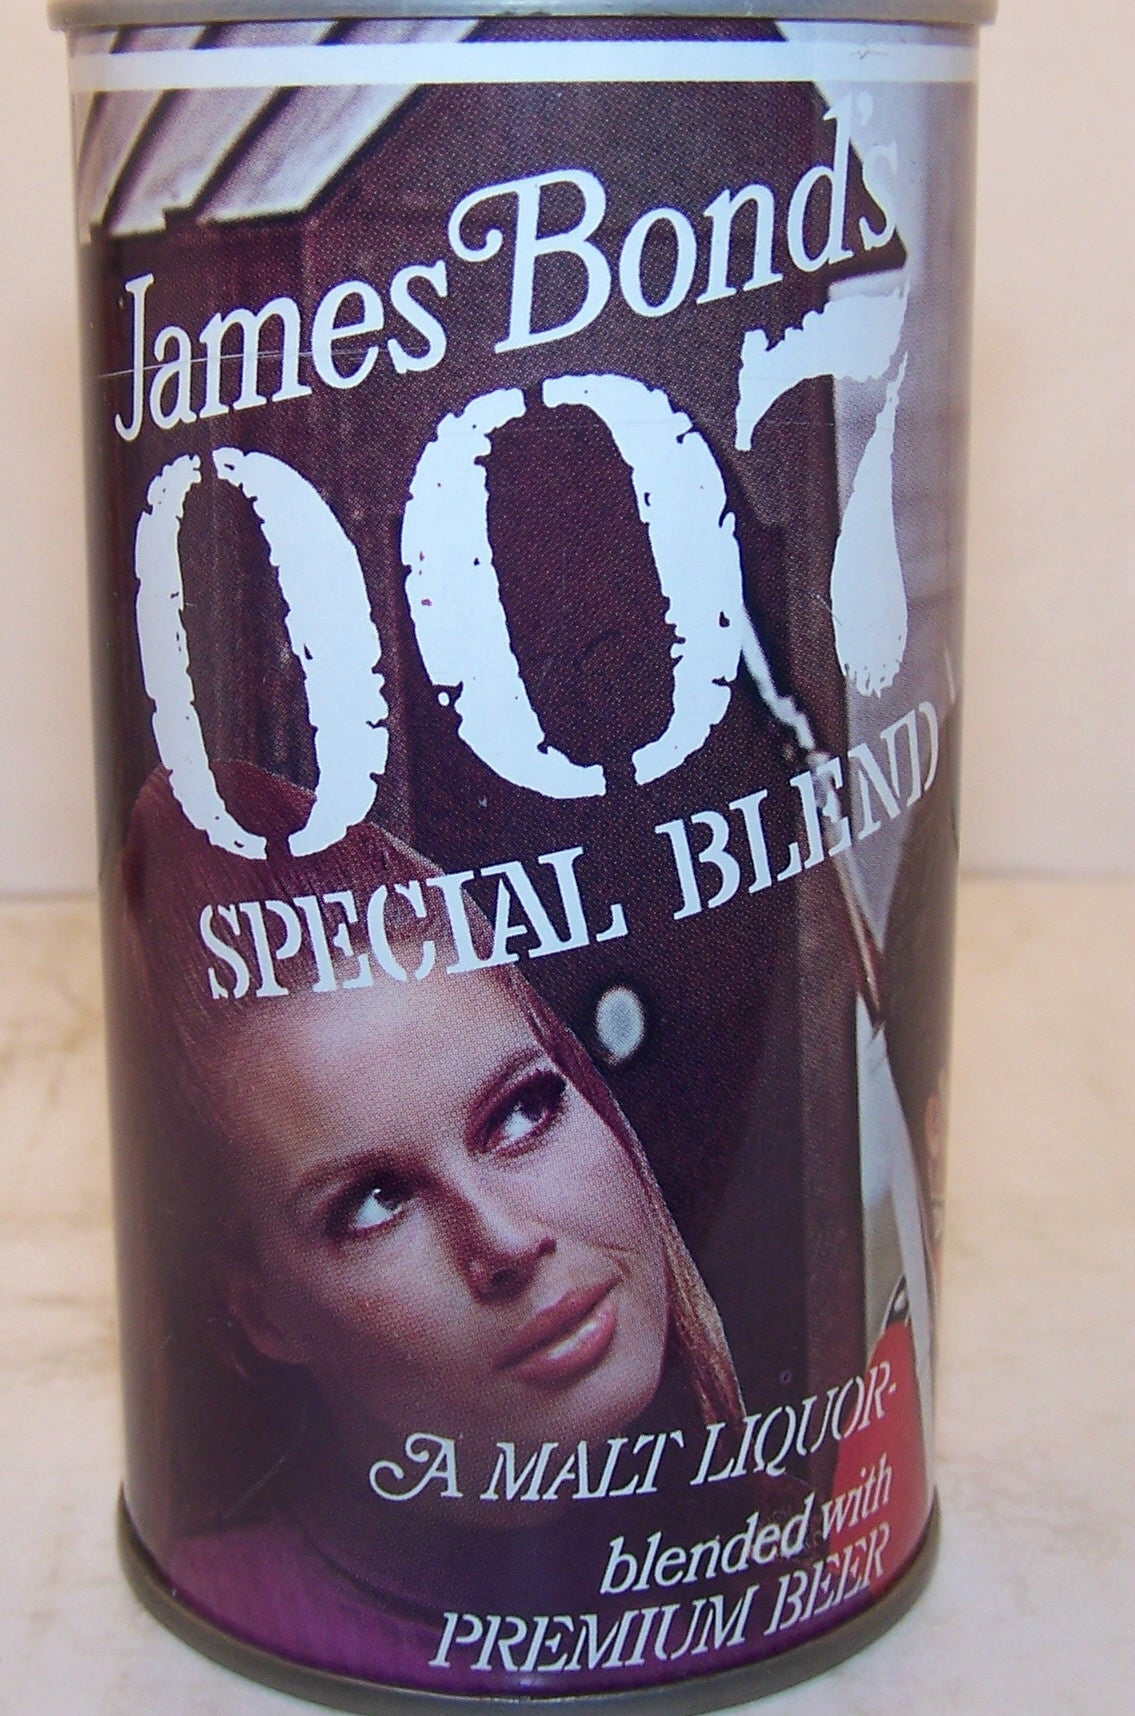 James Bond's 007 White stripe Malt Liquor, USBC II 82-34, Grade A1+ Sold on 10/07/16